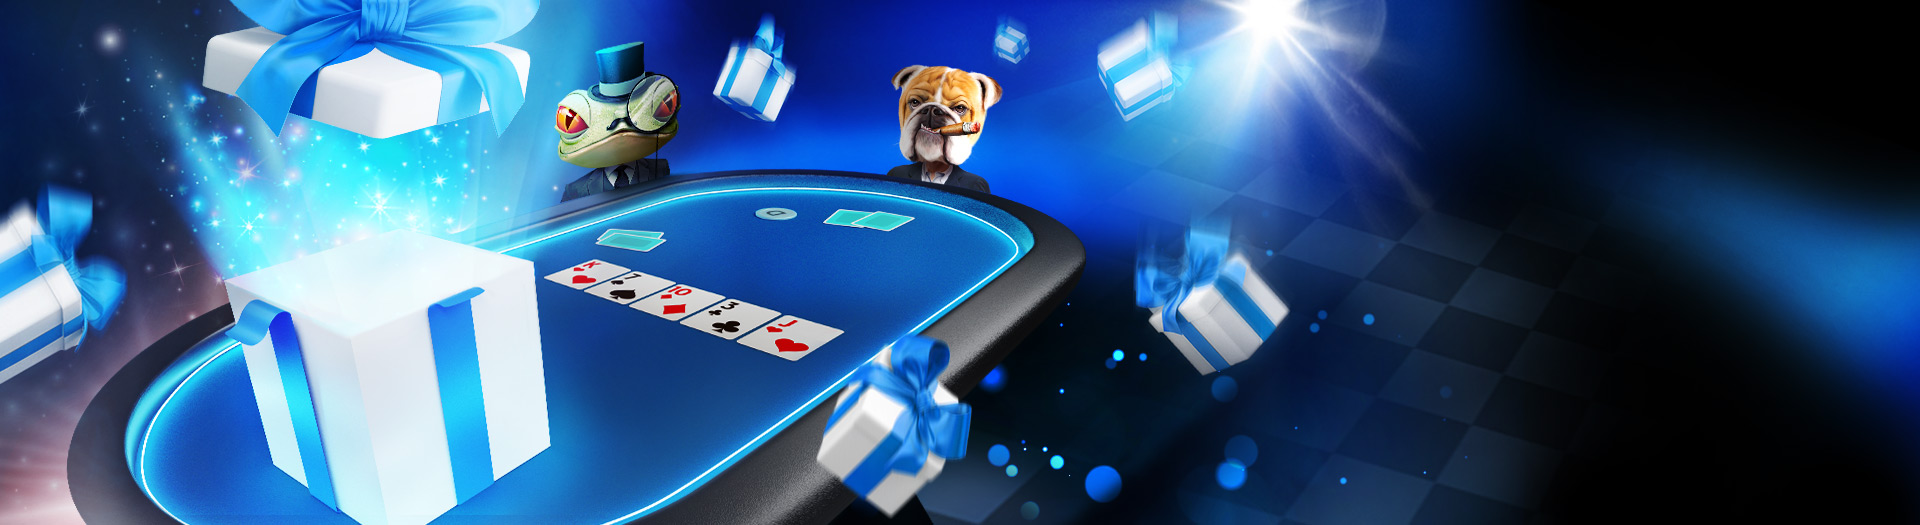 888 poker registration bonus codes